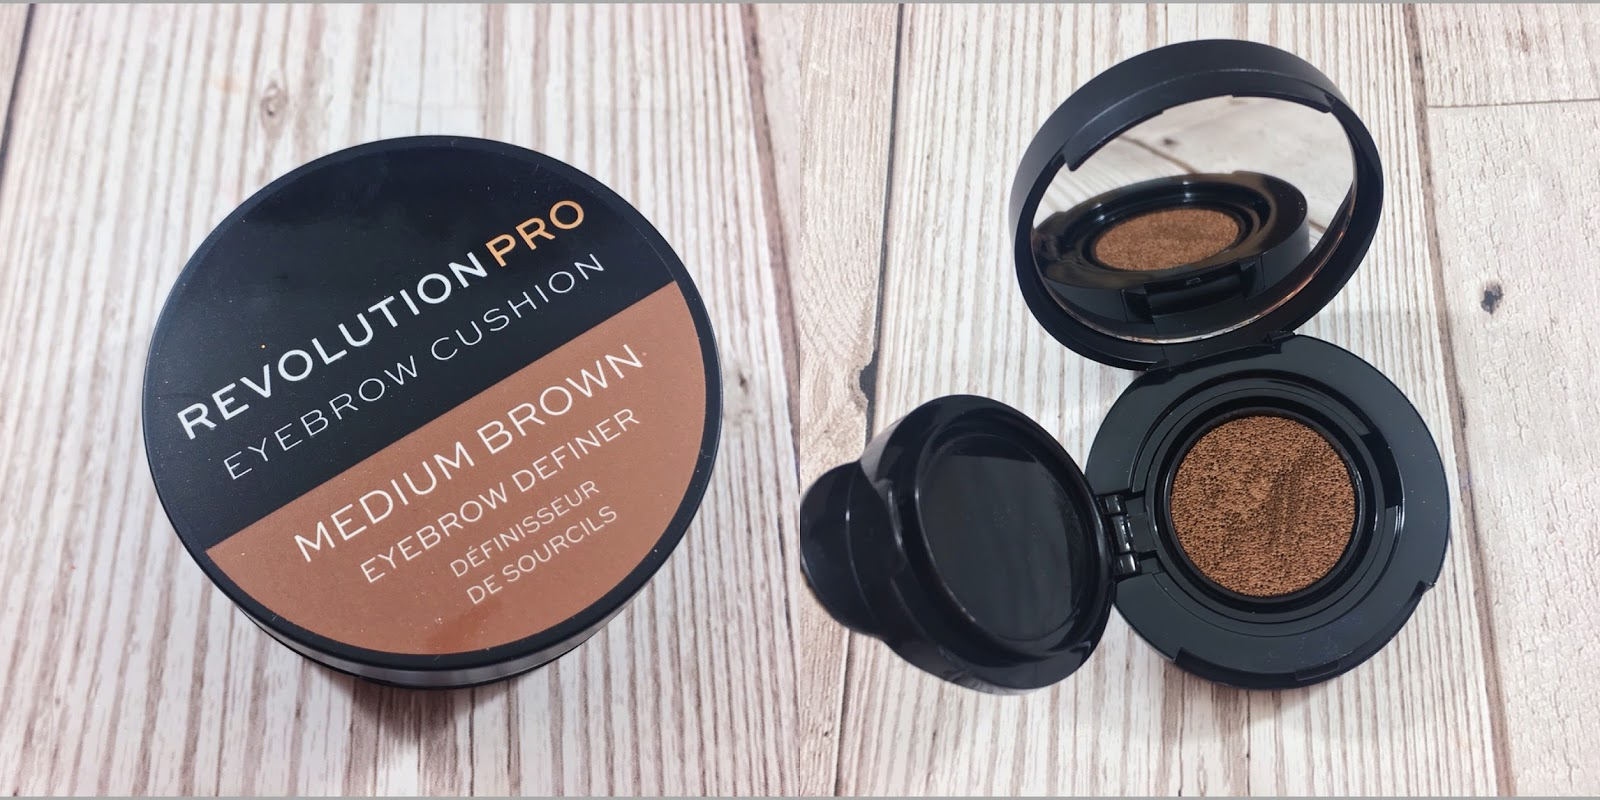 Review Revolution Pro Eyebrow Cushion Gimmicky Matbeauty